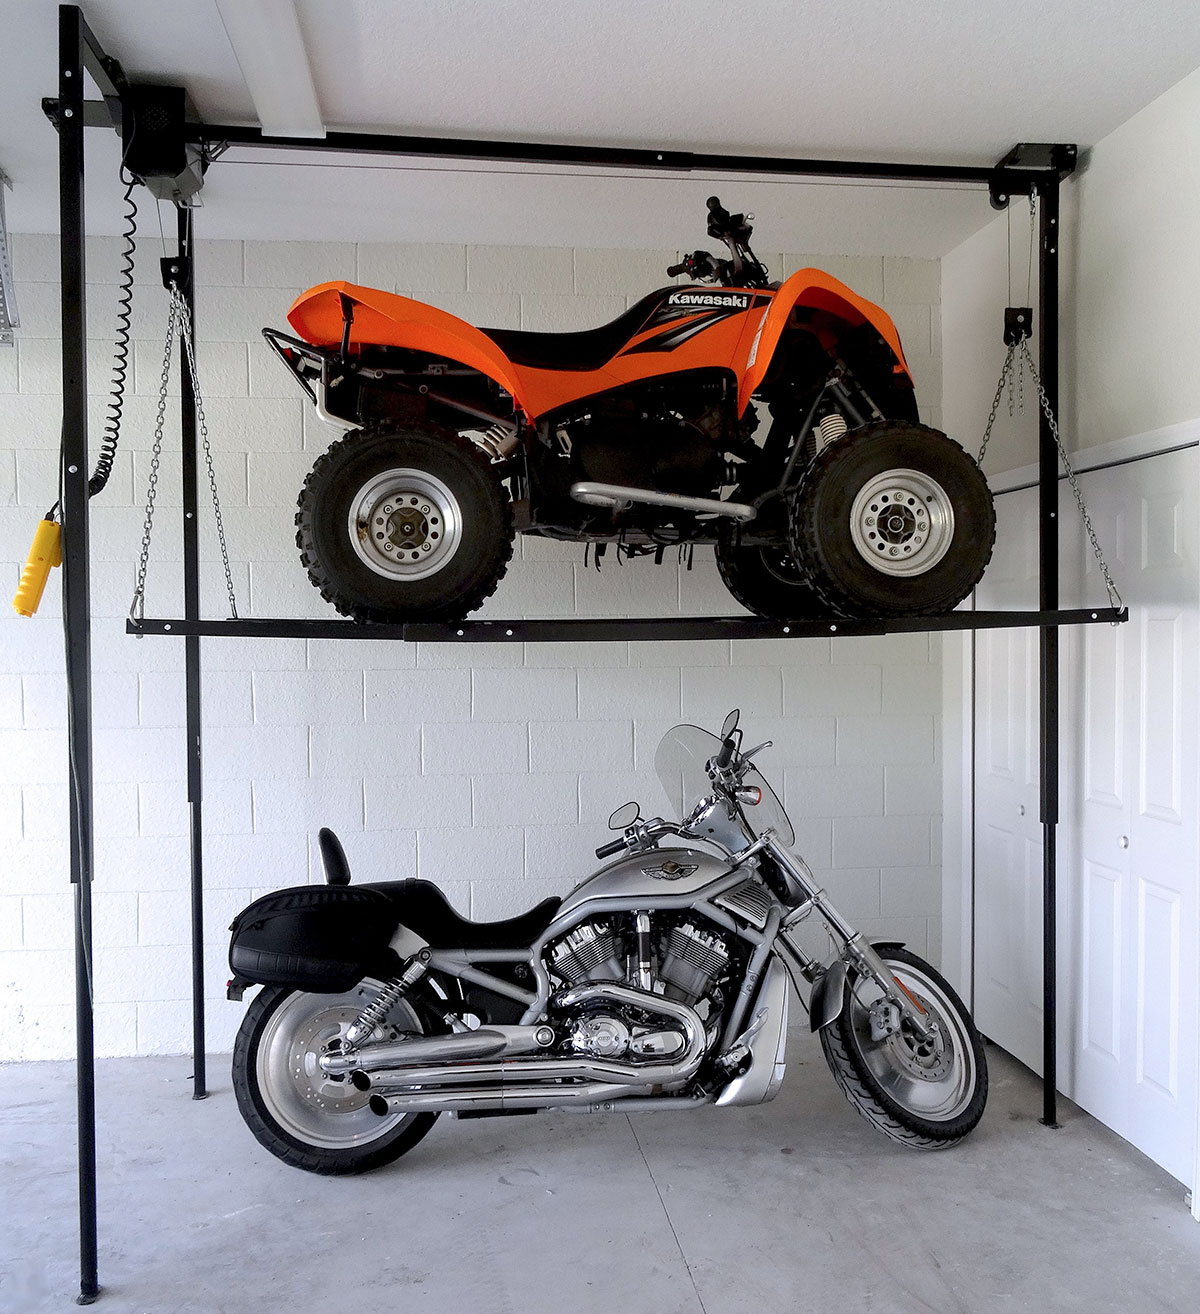 ATV Lift Garage Platform Storage & ATV Lift Garage Storage Platform - Store Motorcycles Tools u0026 Equipment